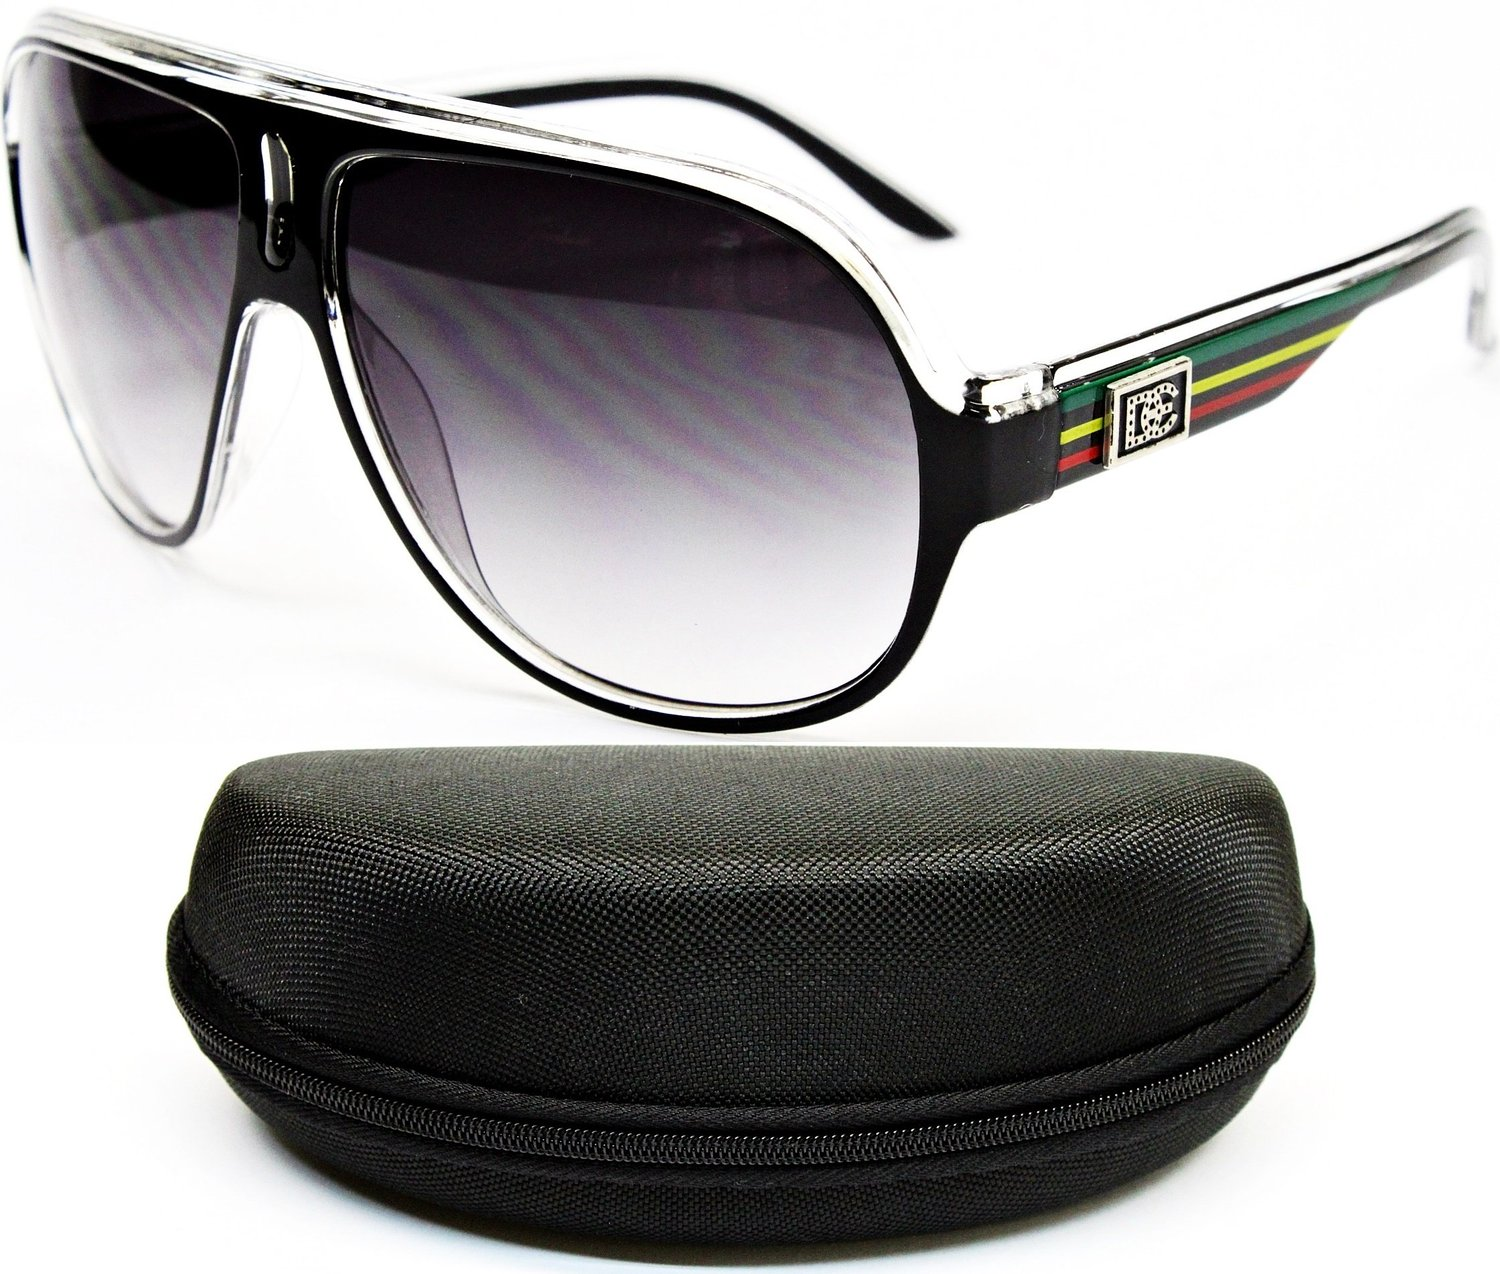 Designer Super Turbo Sunglasses